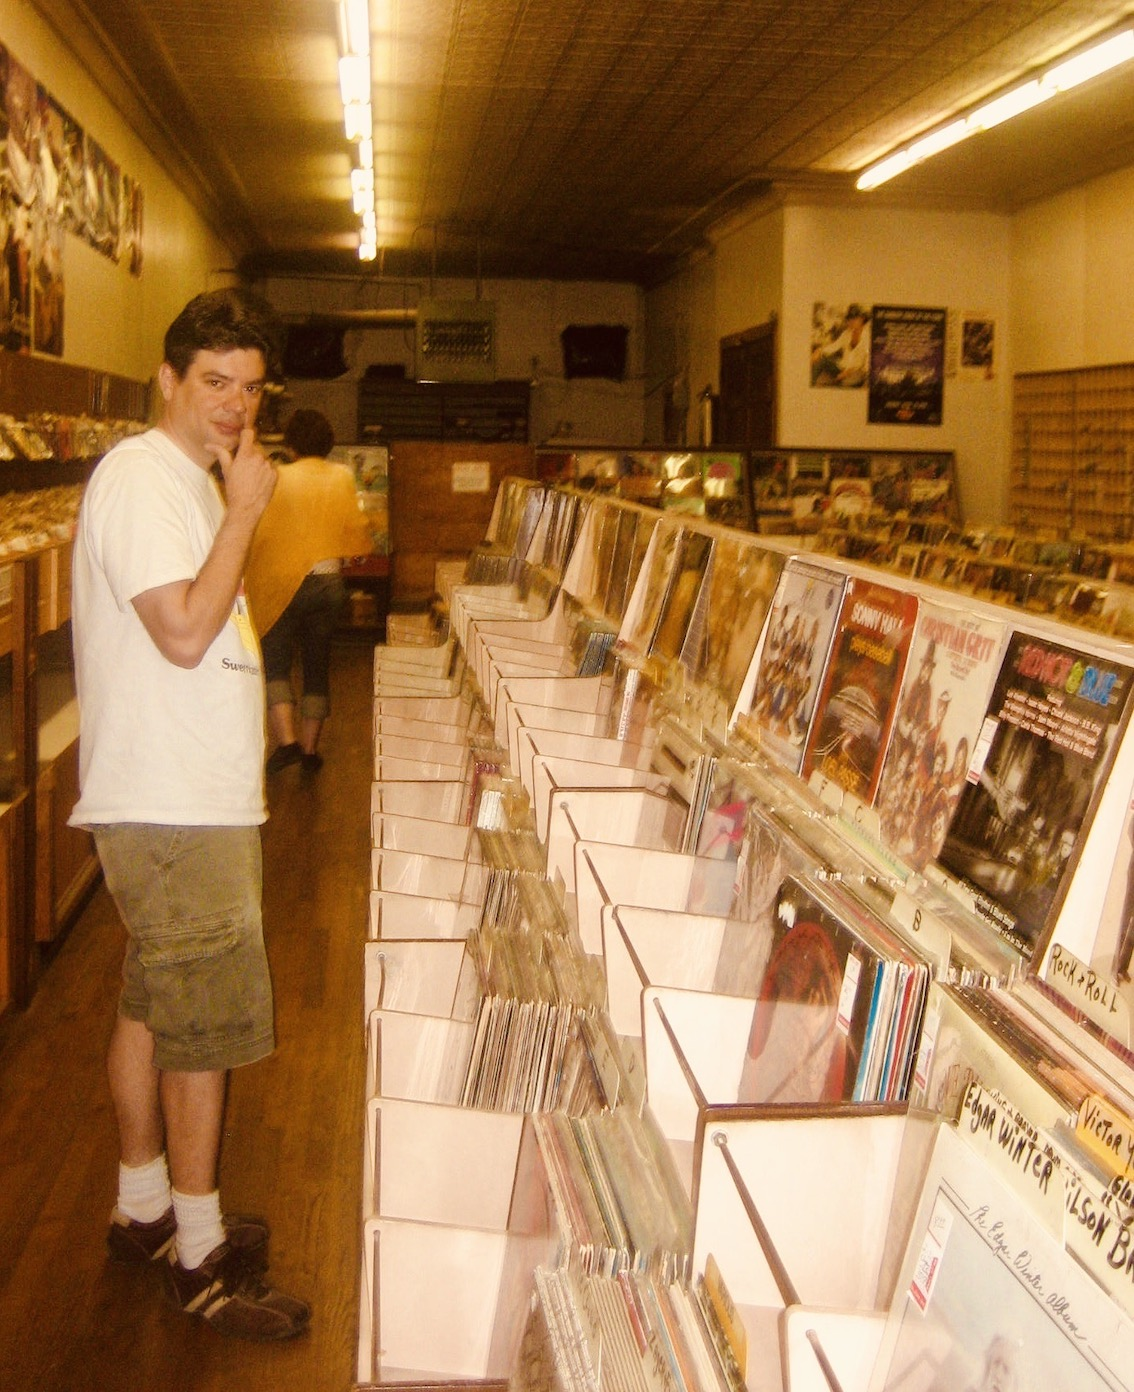 Lawrence Record Shop 1954 - 2016